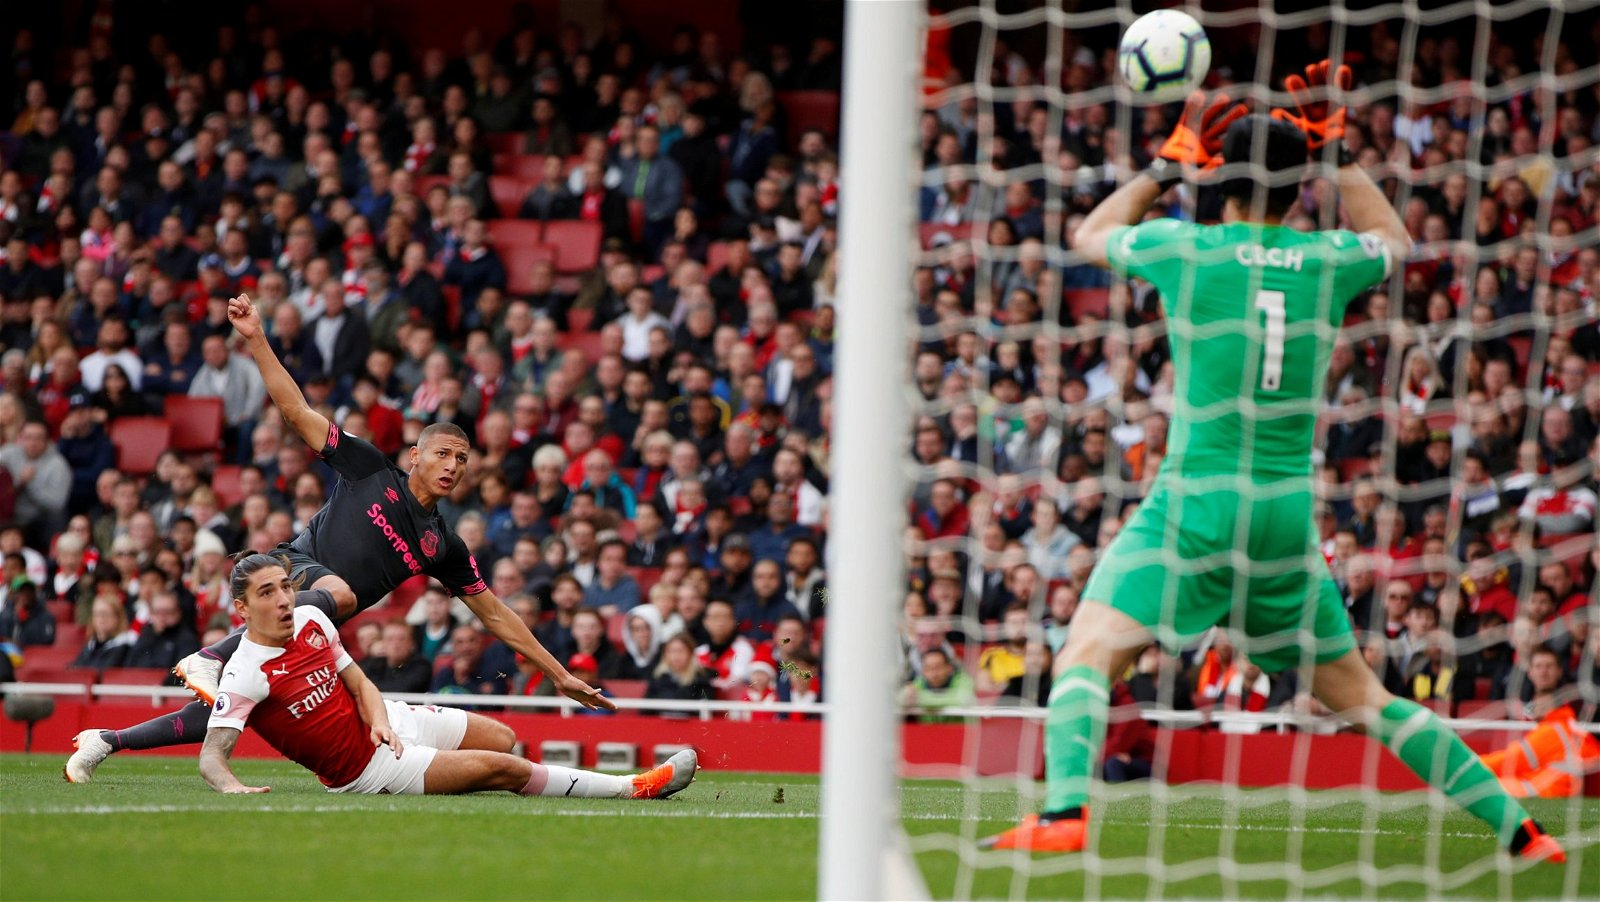 Richarlison shoots against Arsenal